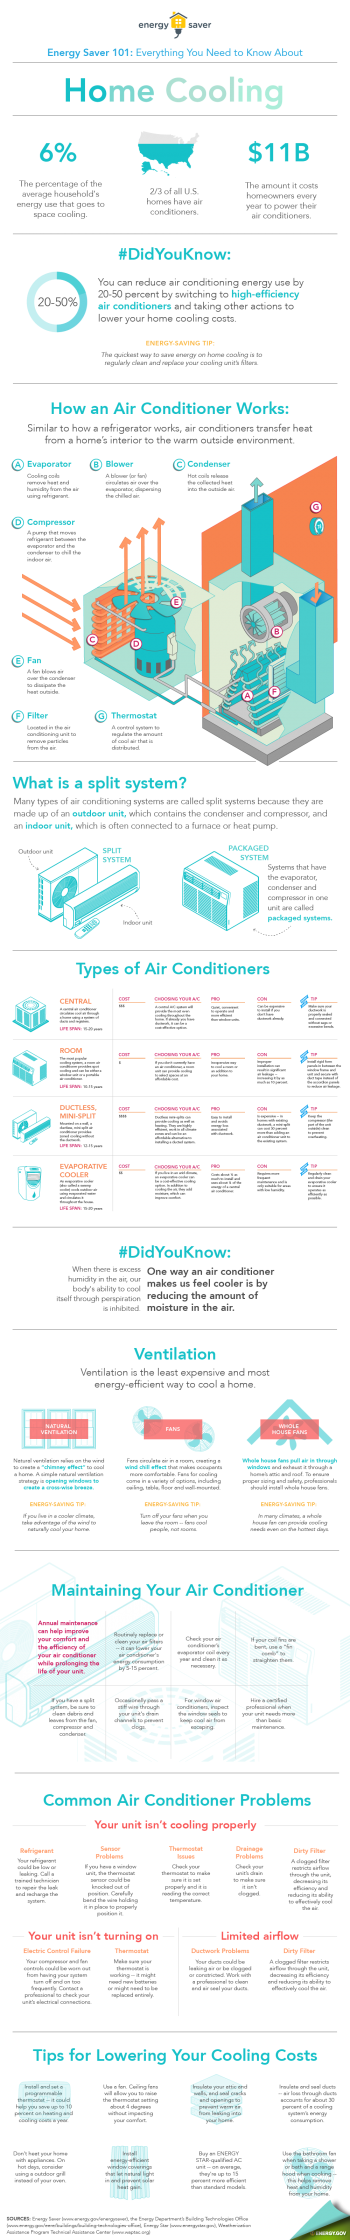 "Our Energy Saver 101 infographic covers everything you need to know about home cooling. Download a <a href=""node/920771"">high-resolution version</a> of the home cooling infographic.